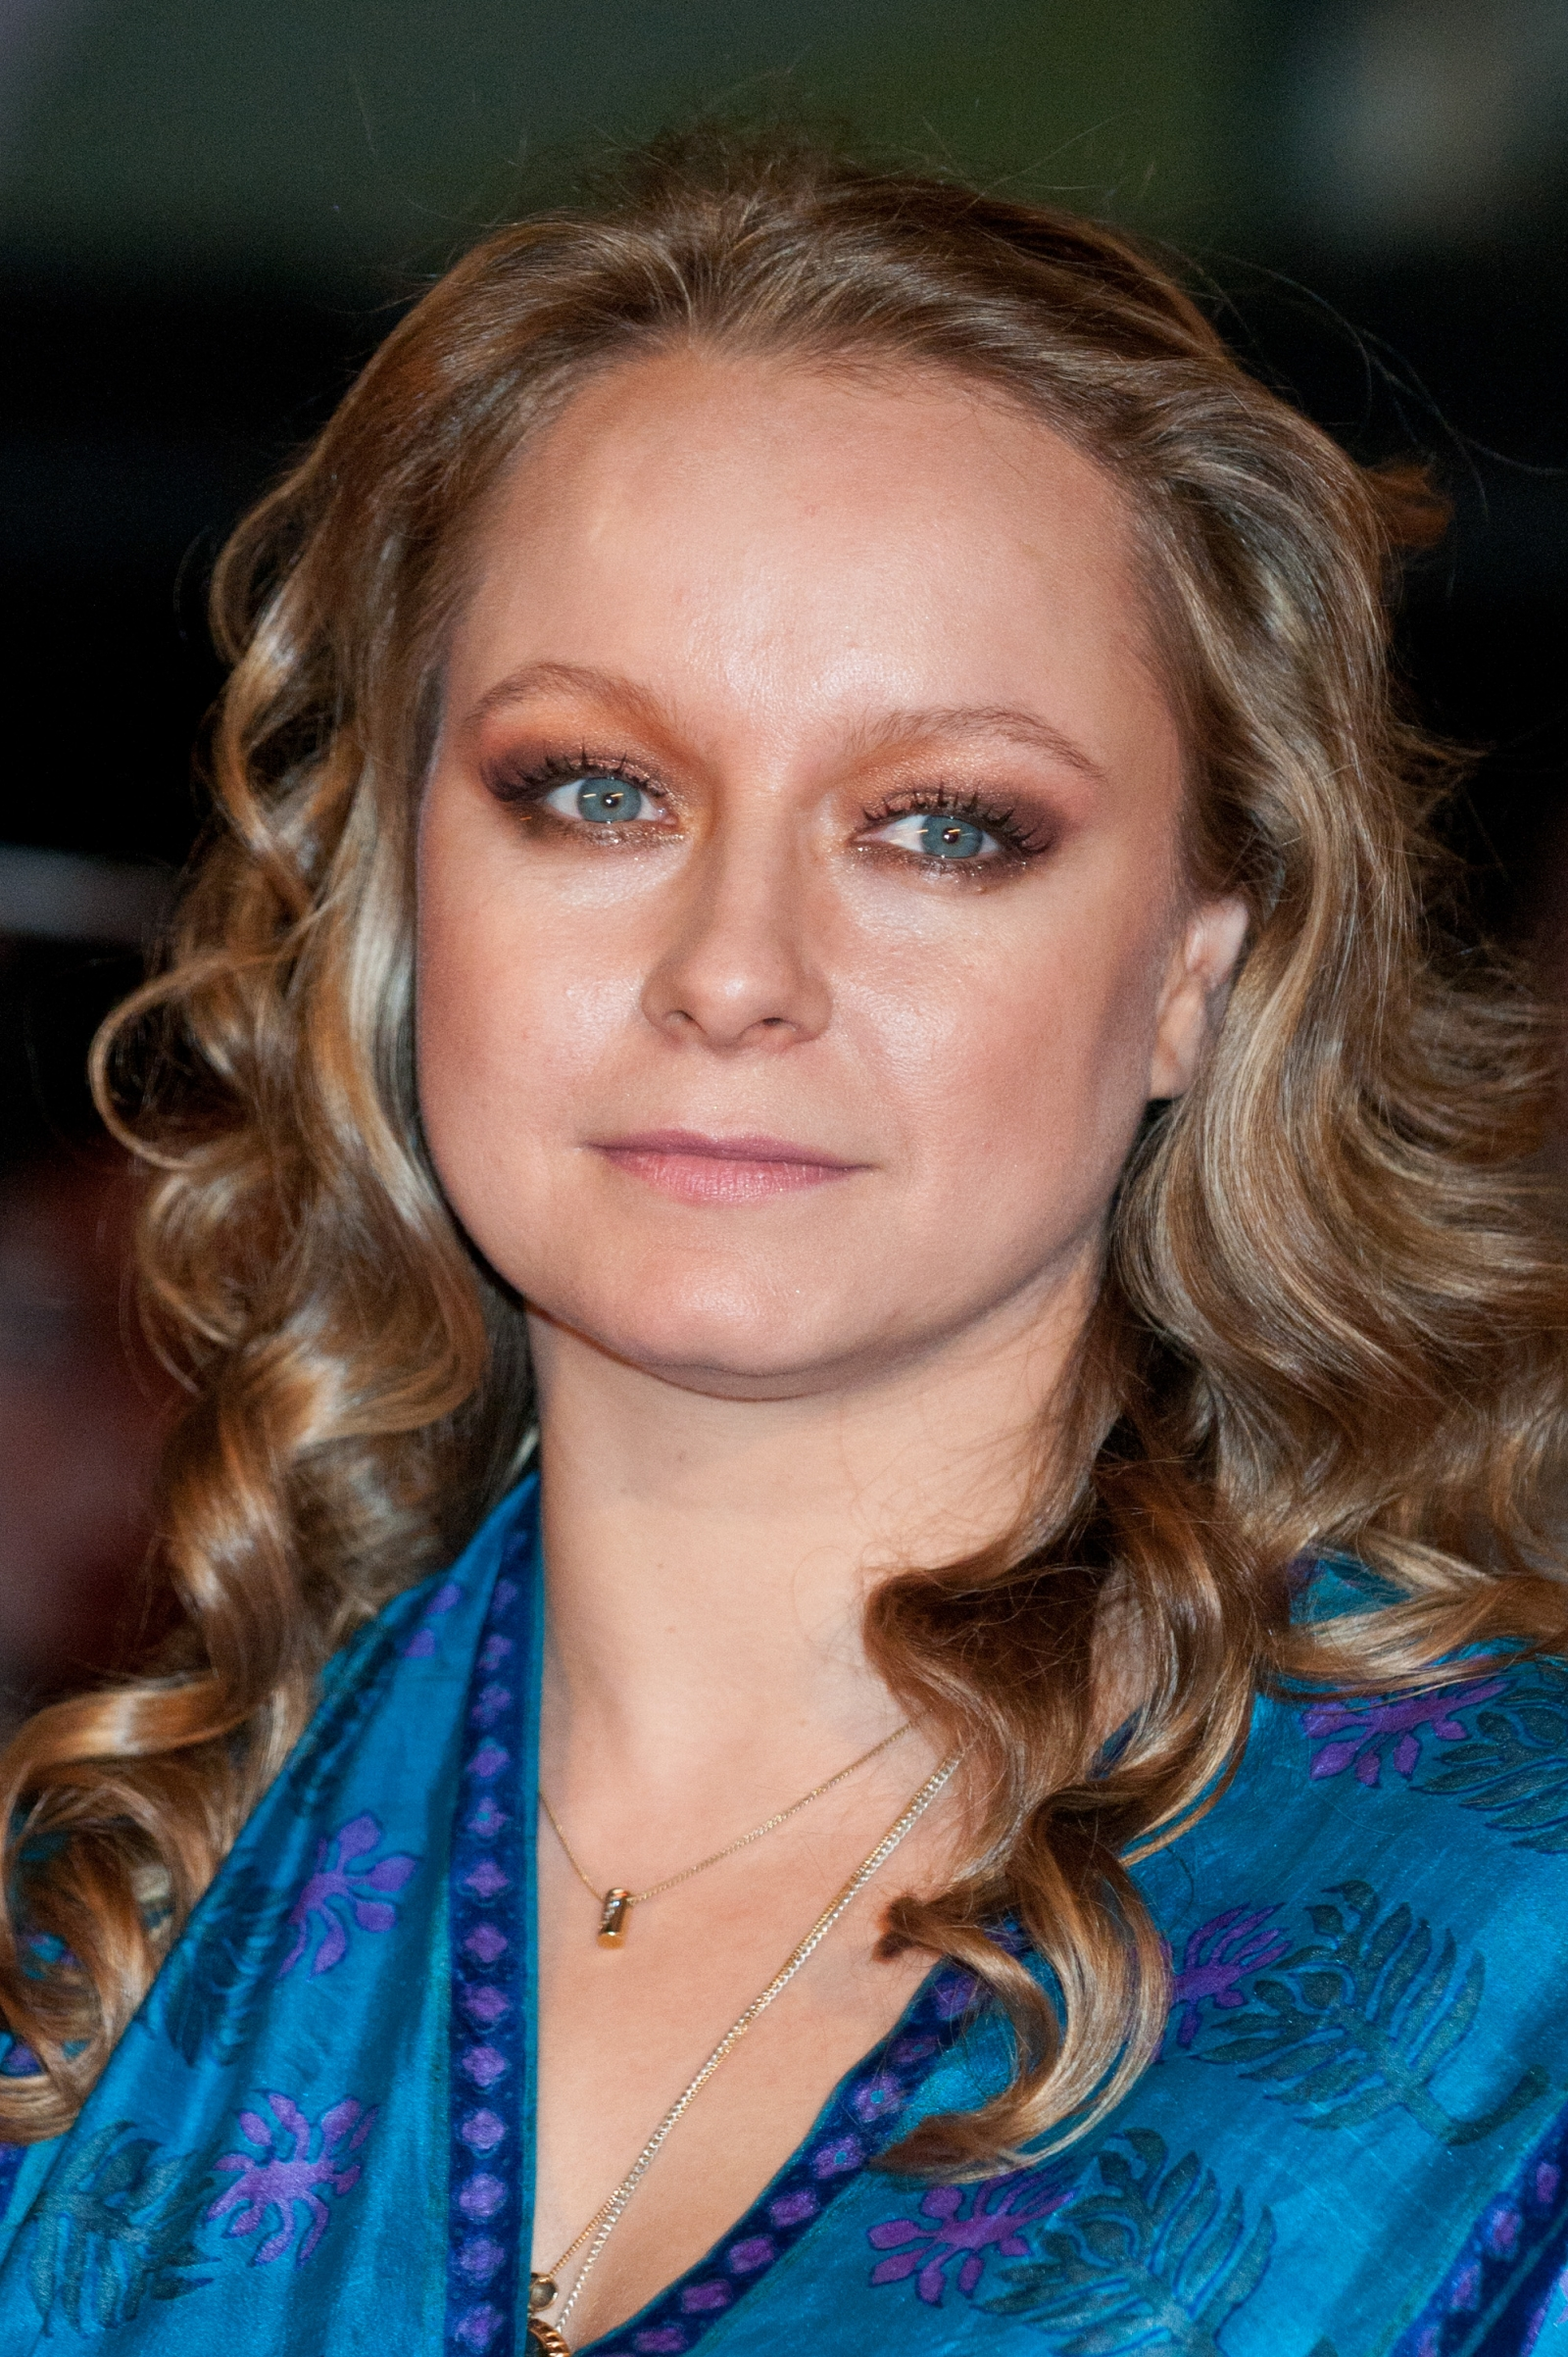 samantha morton claims she was sexually abused at